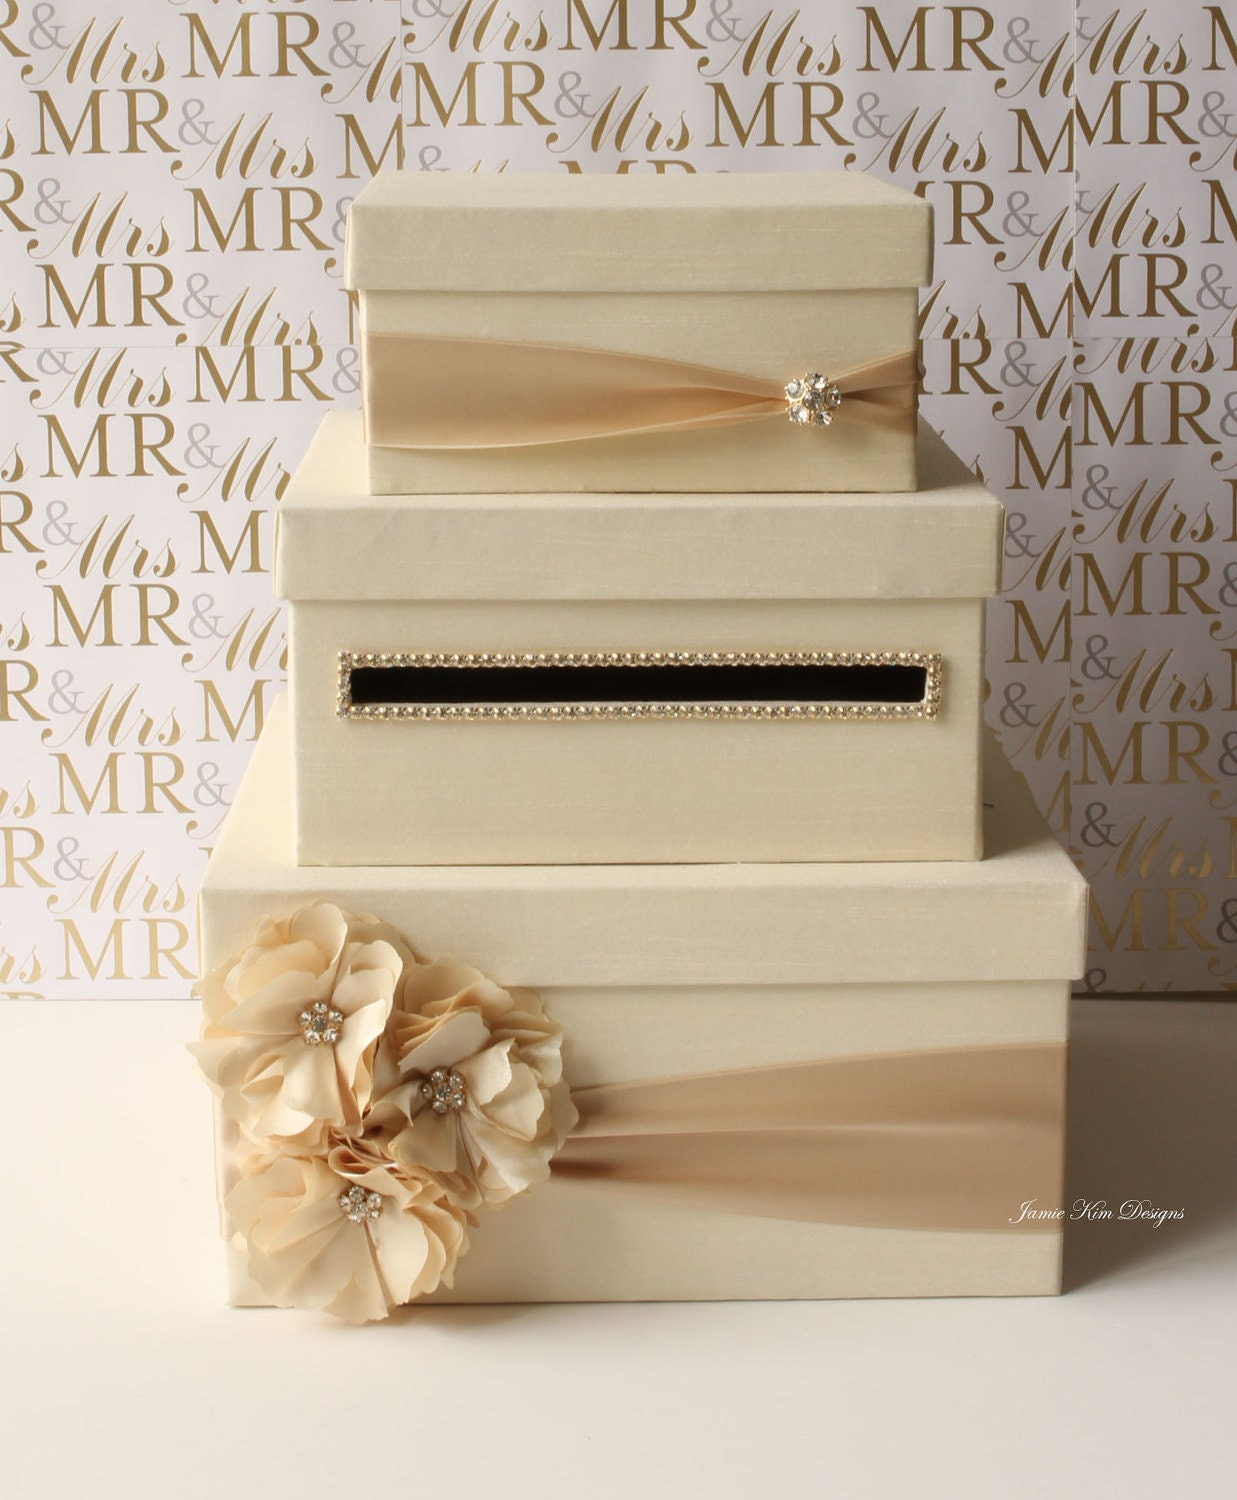 Wedding Gift Card Containers : Wedding Card Box Money Box Gift Card Holder choose your